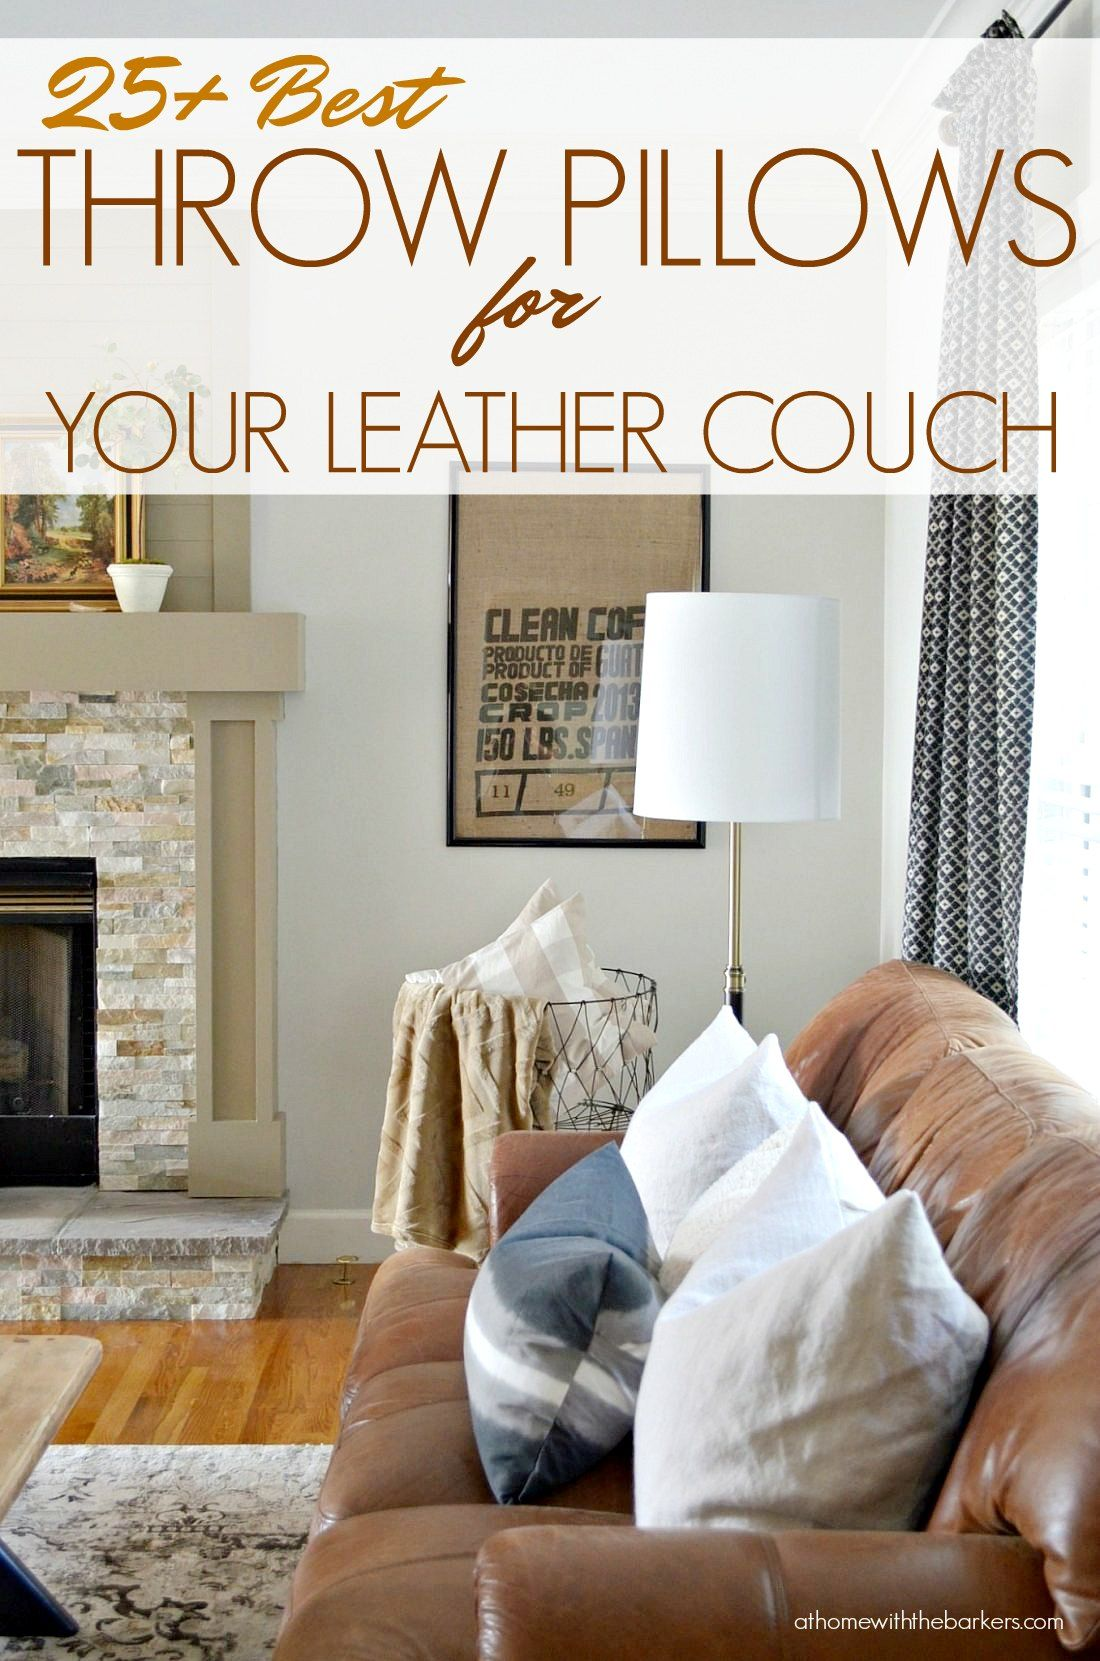 Best Throw Pillows For Leather Couch At Home With The Barkers Leather Couches Living Room Brown Leather Couch Brown Leather Couch Living Room